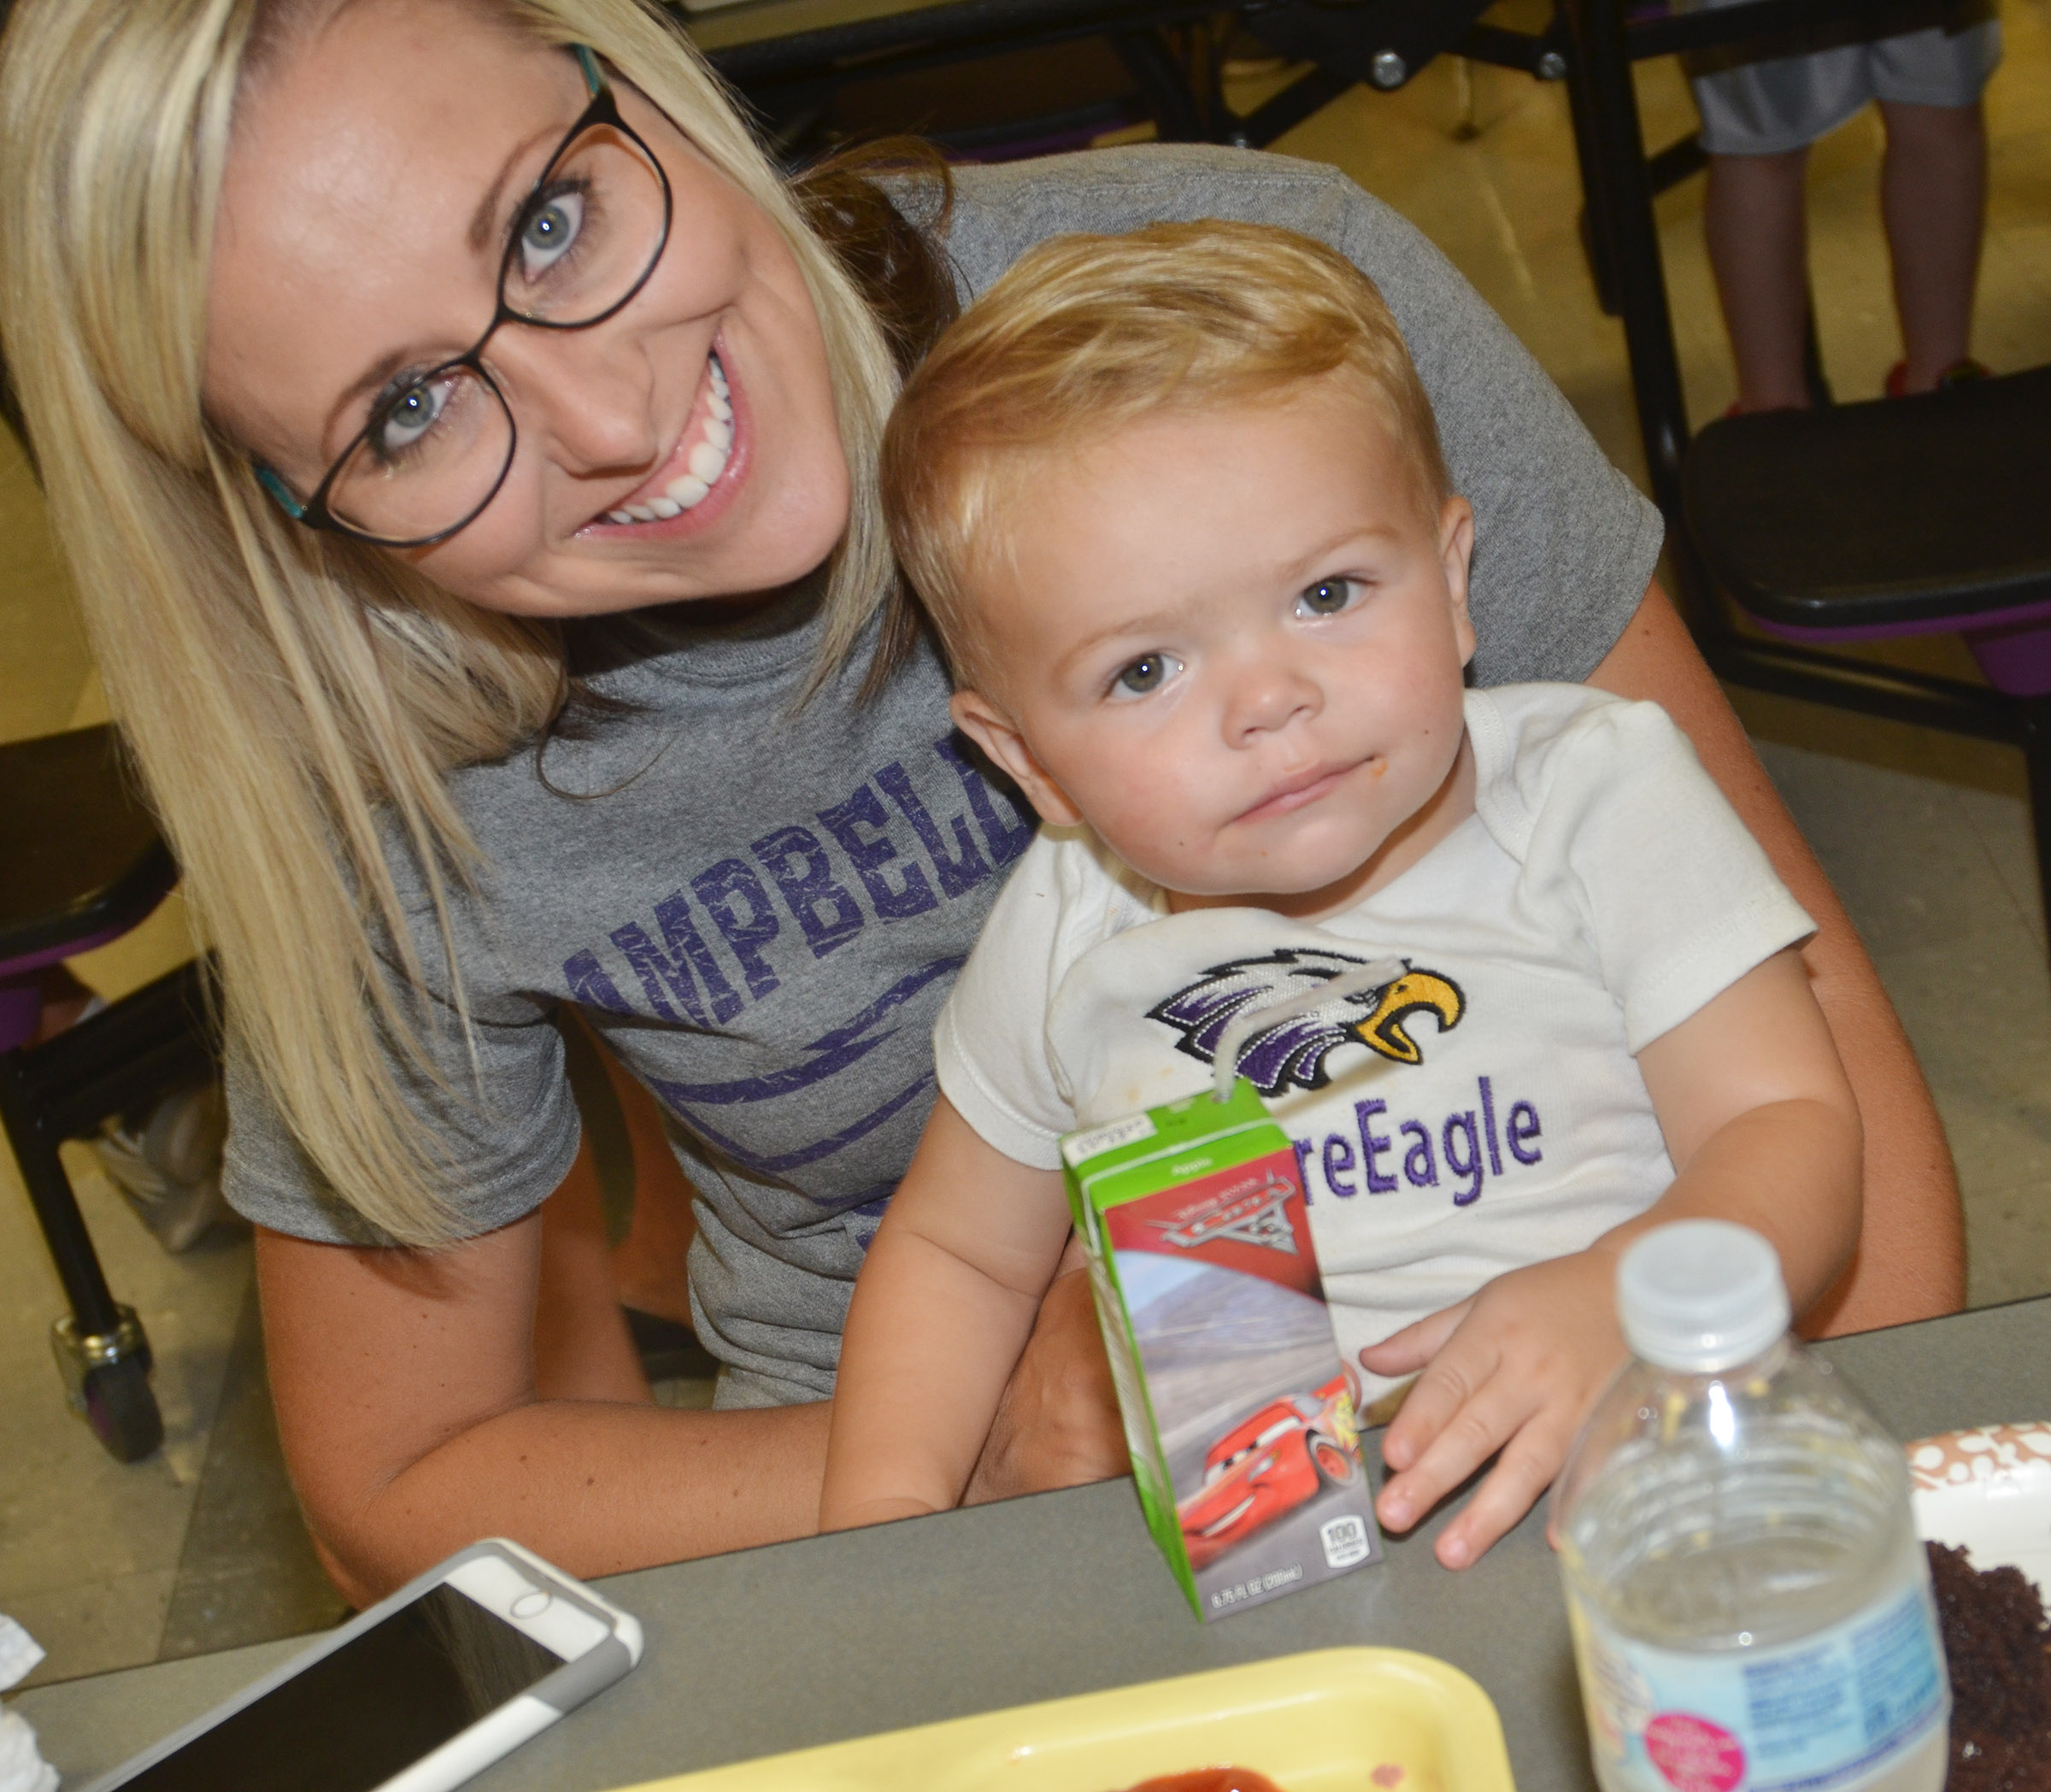 CES teacher Hannah Jones eats chili with her son Grady.